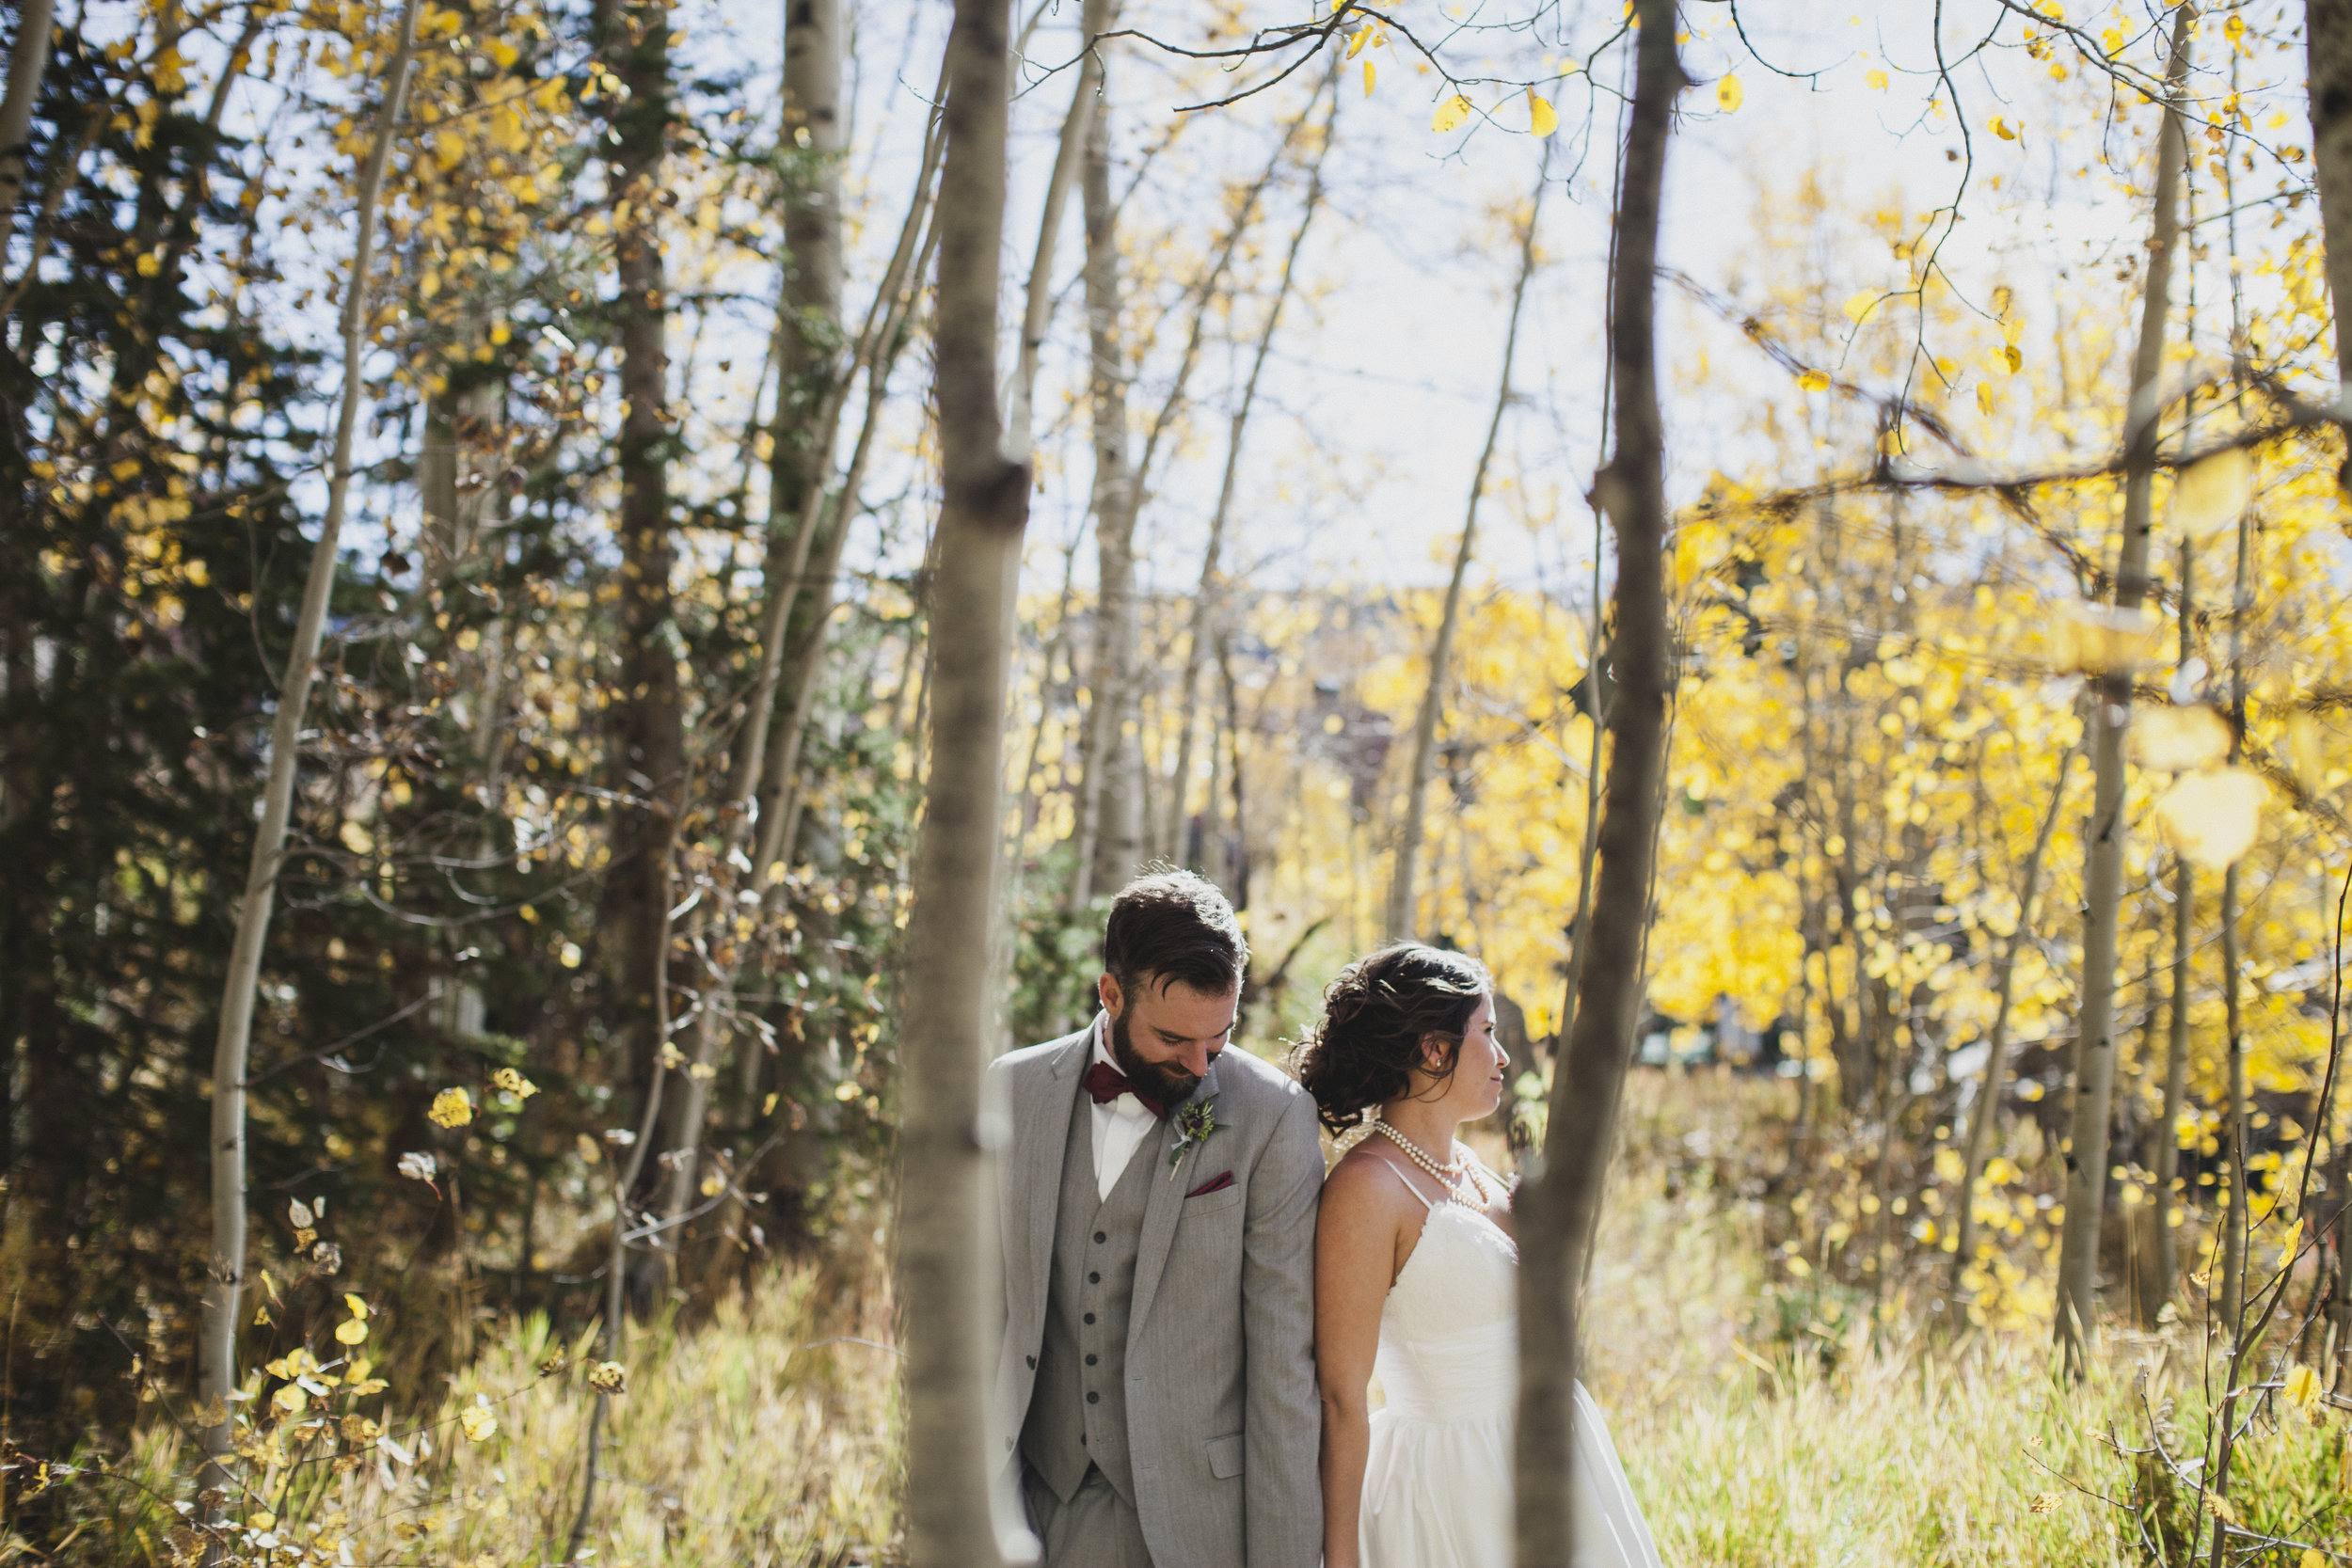 NE-LeahandAshtonphotography-Telluride-Wedding-Photography-7184.jpg